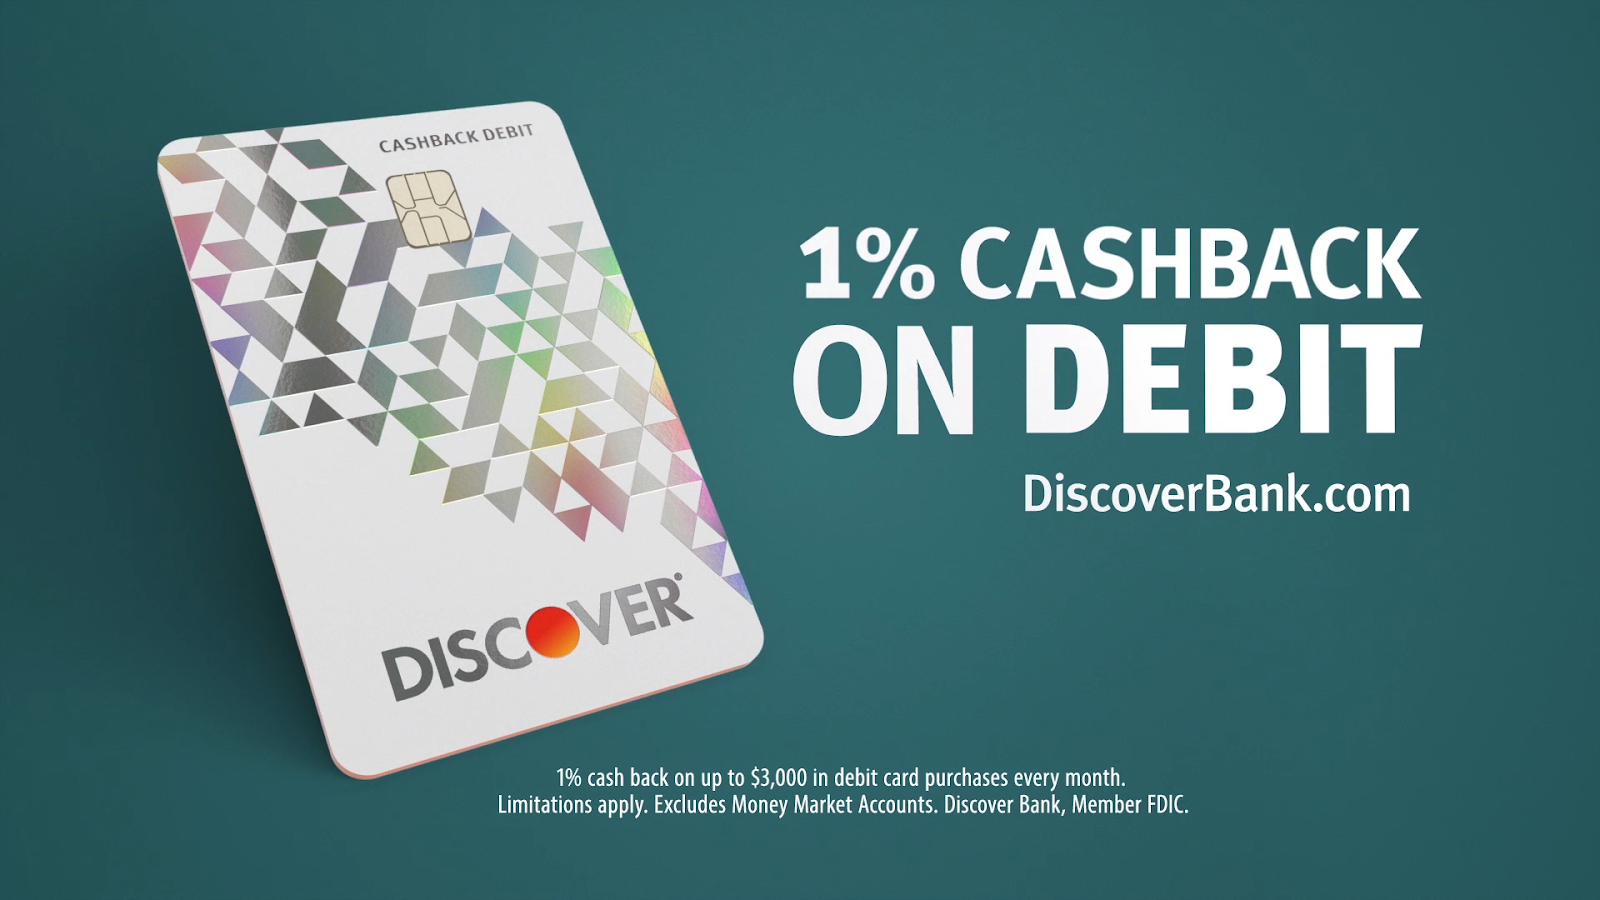 Image: Discover Bank